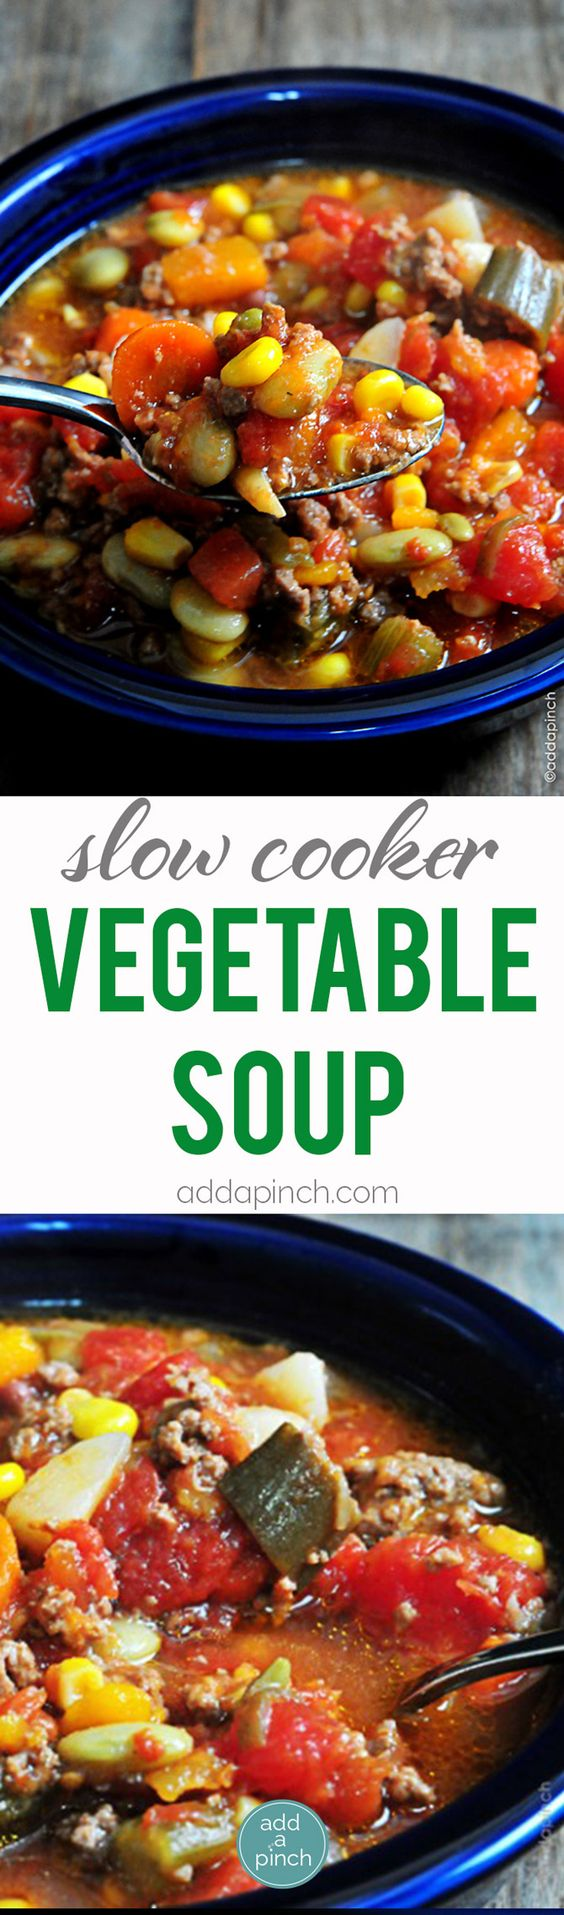 Slow Cooker Vegetable Soup - This Slow Cooker Vegetable Soup recipe is so simple to make and absolutely scrumptious.